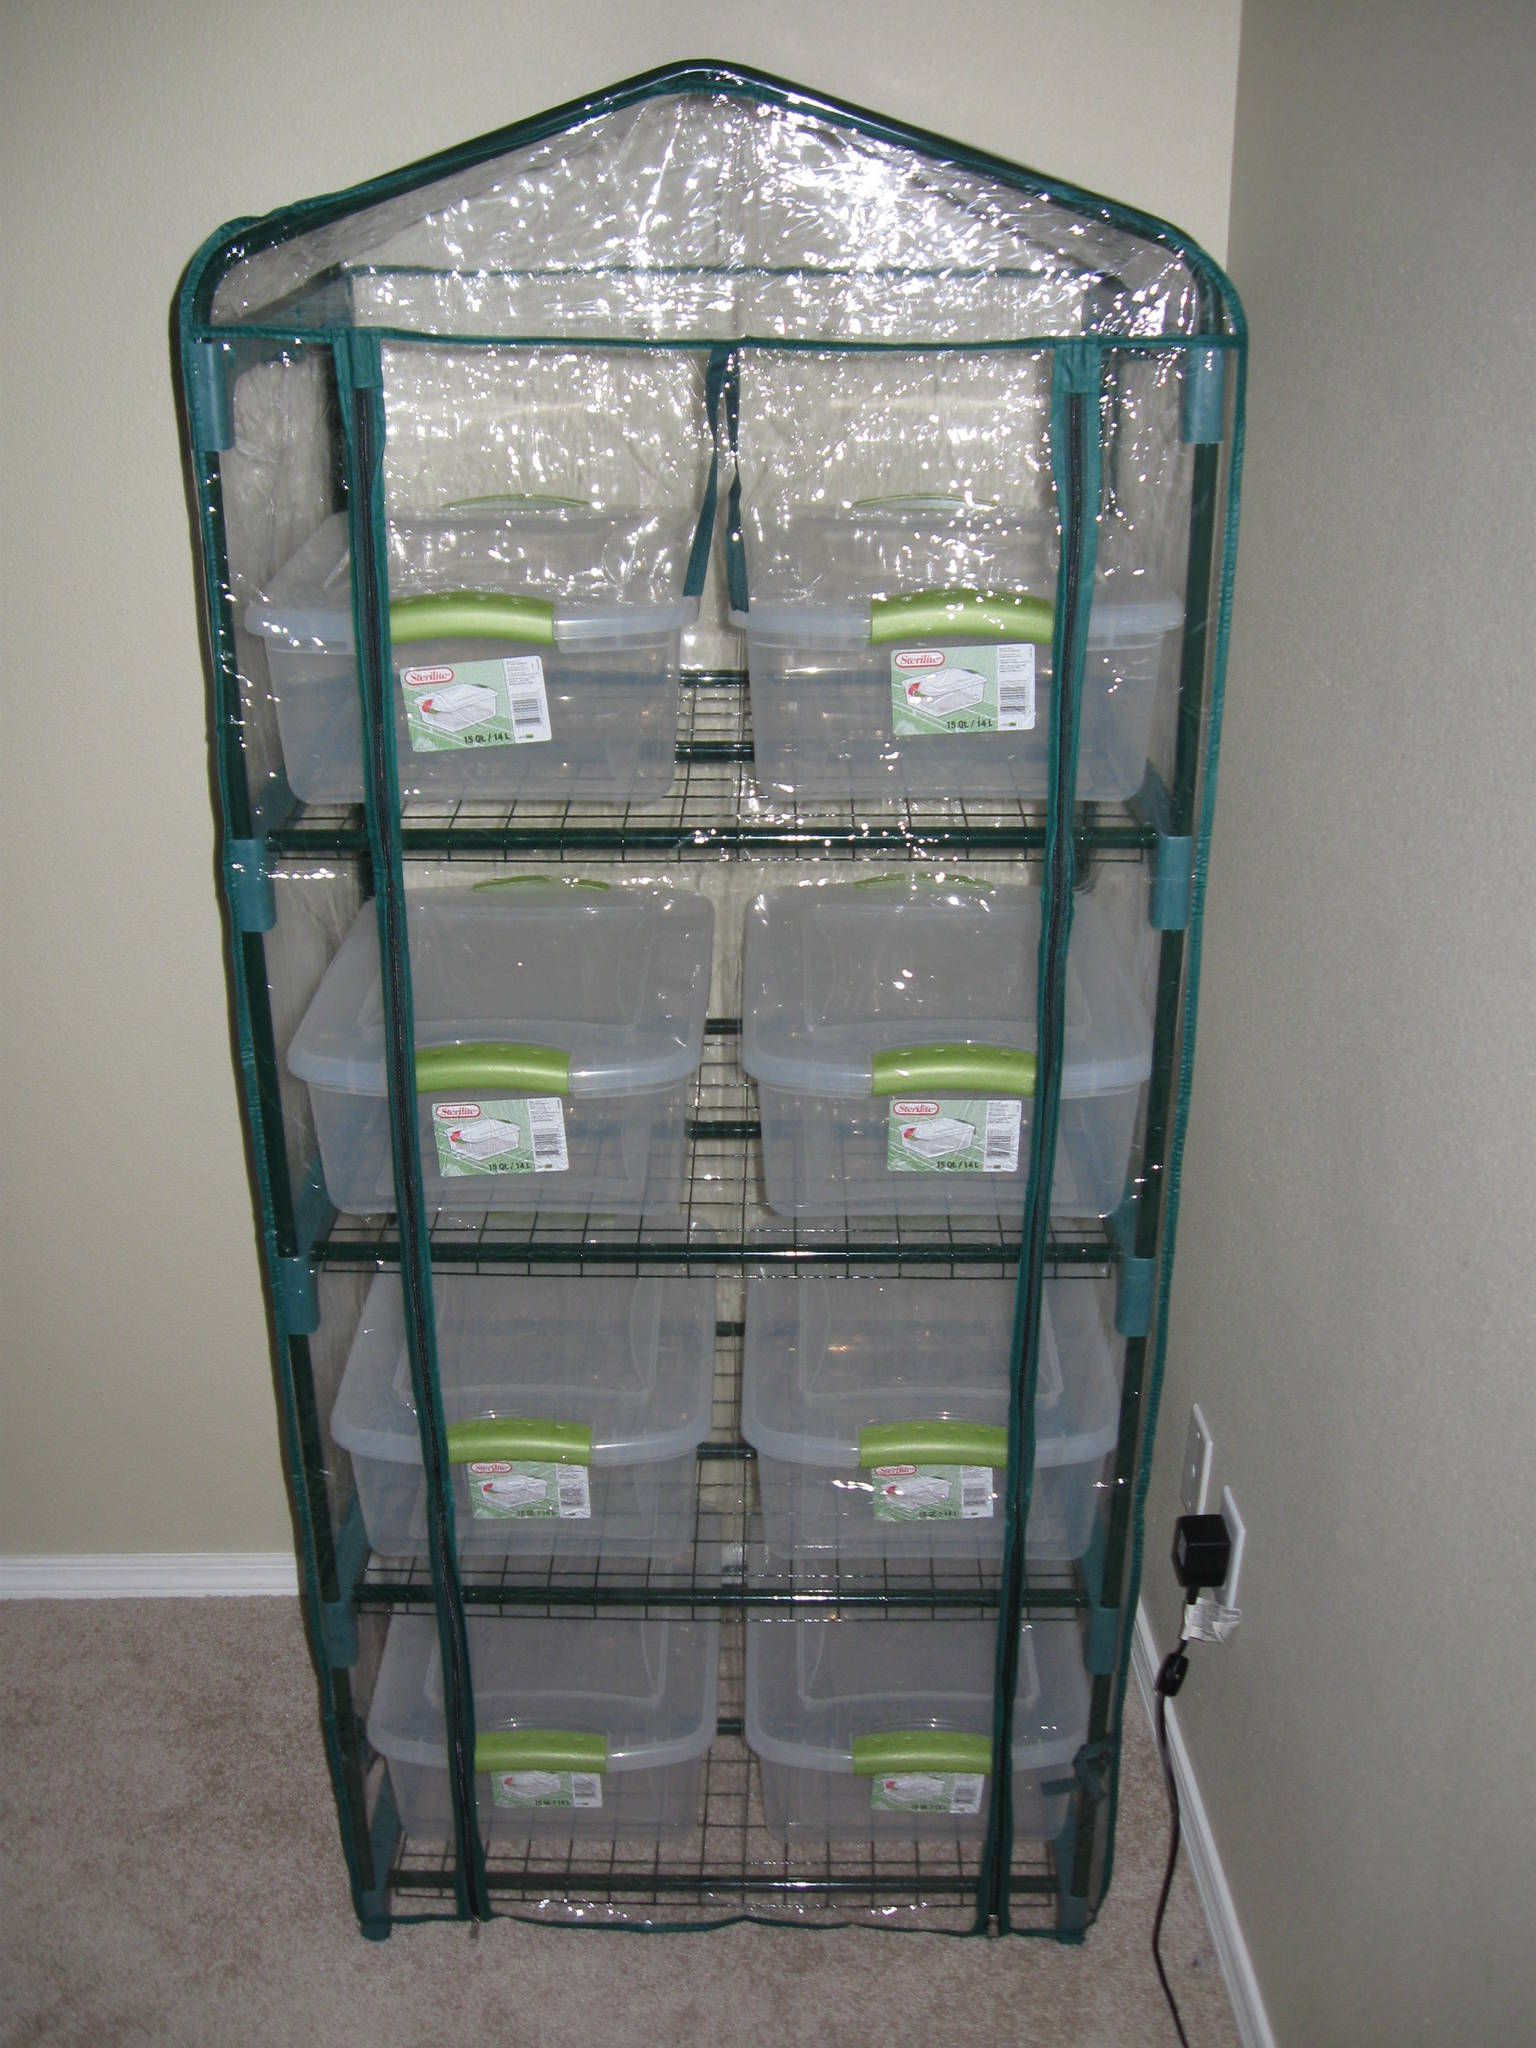 Search ebay for item 270383793134 it is the 4-tier for $29 shipped. I just got mine set up here are some pics. & GROW TENT/ MARTHA BOX - Mushroom Cultivation - Shroomery Message Board